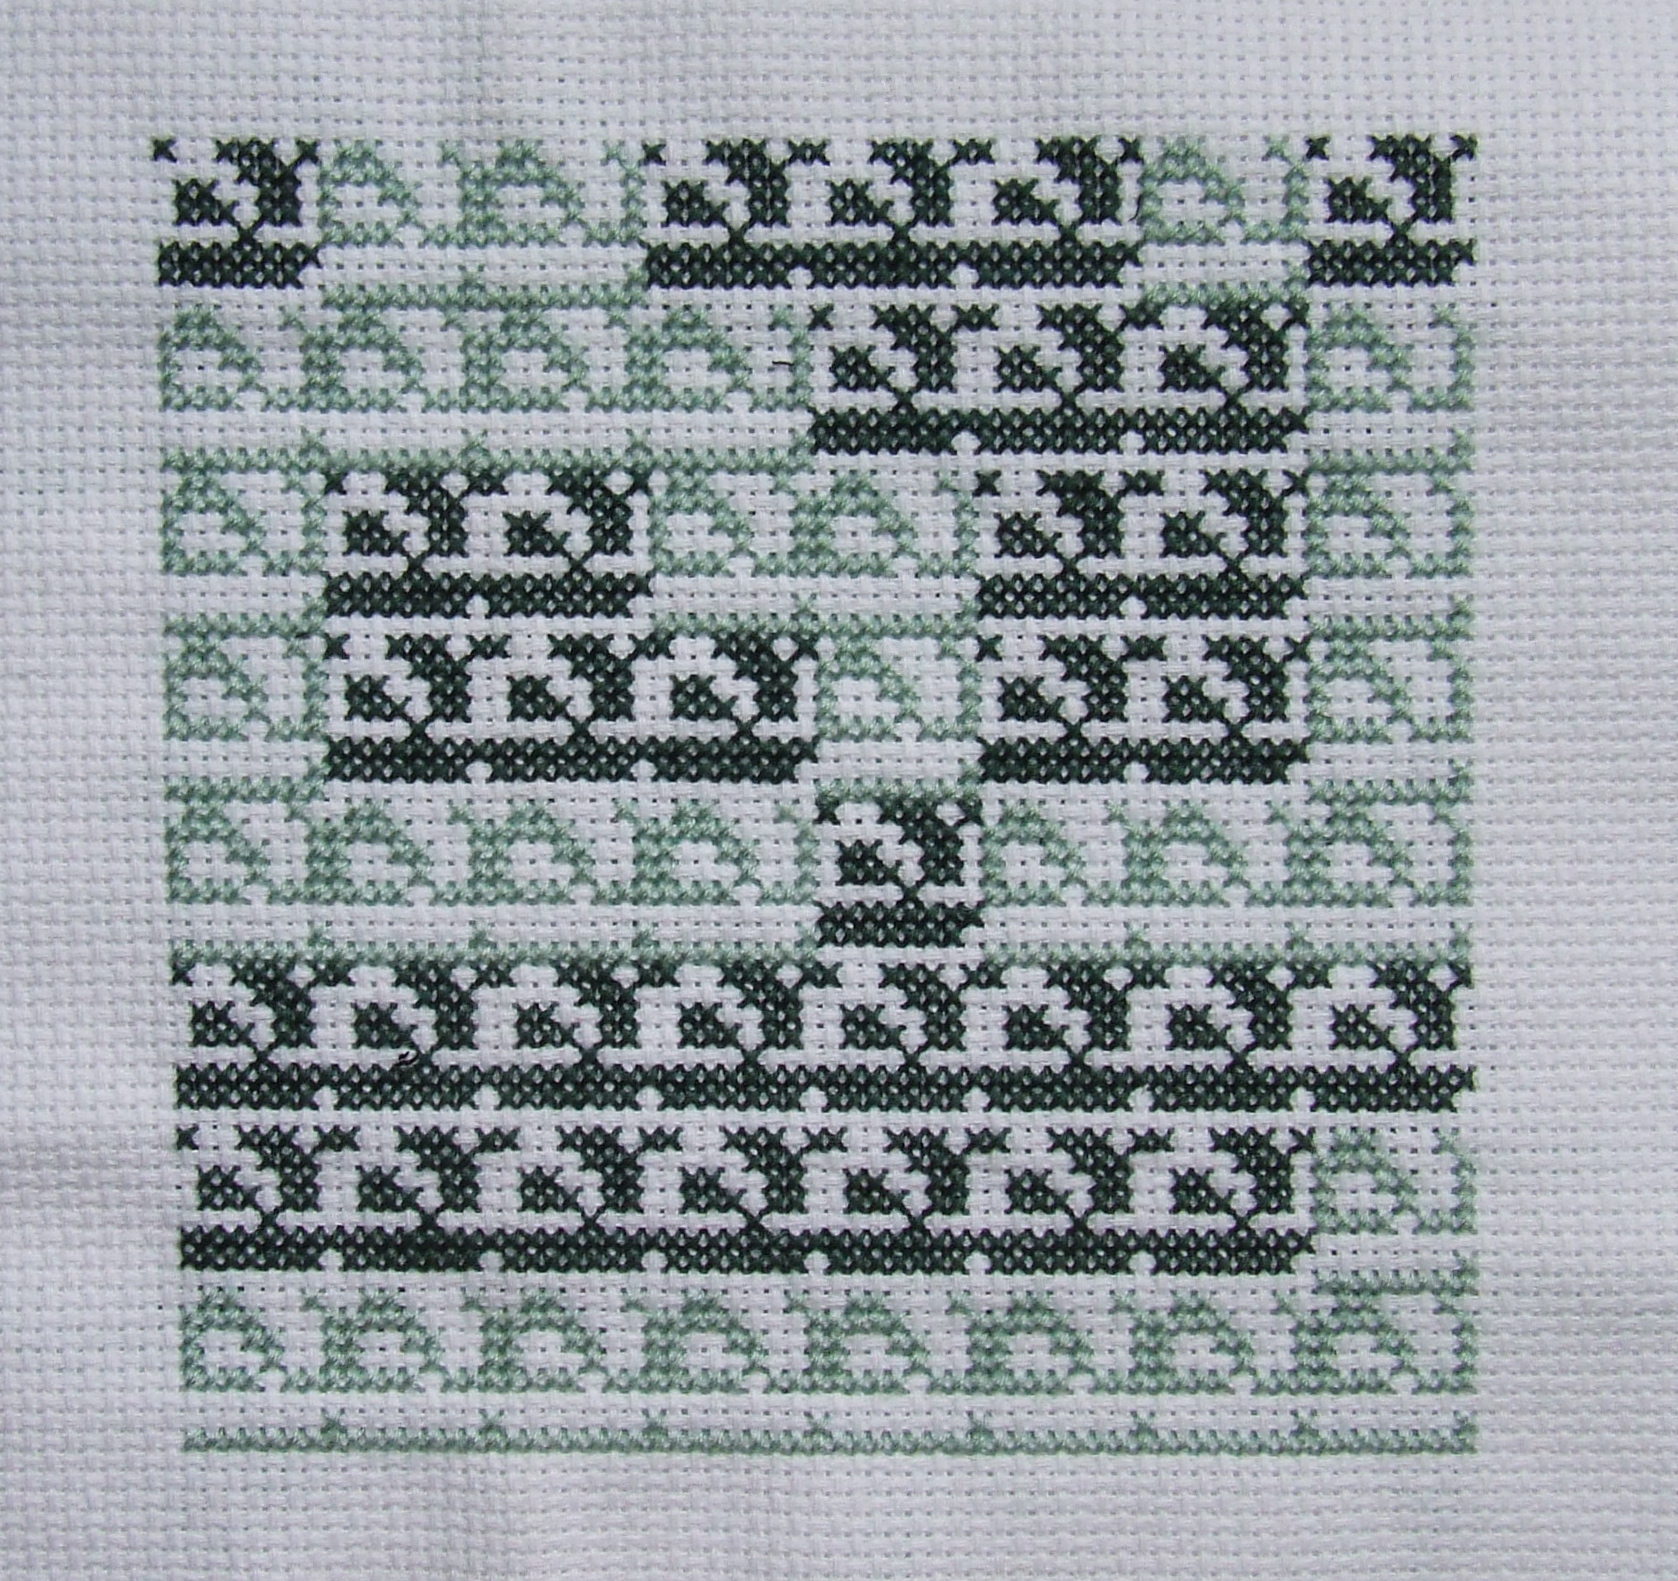 Binary Cross Stitch, Fractal Inspired